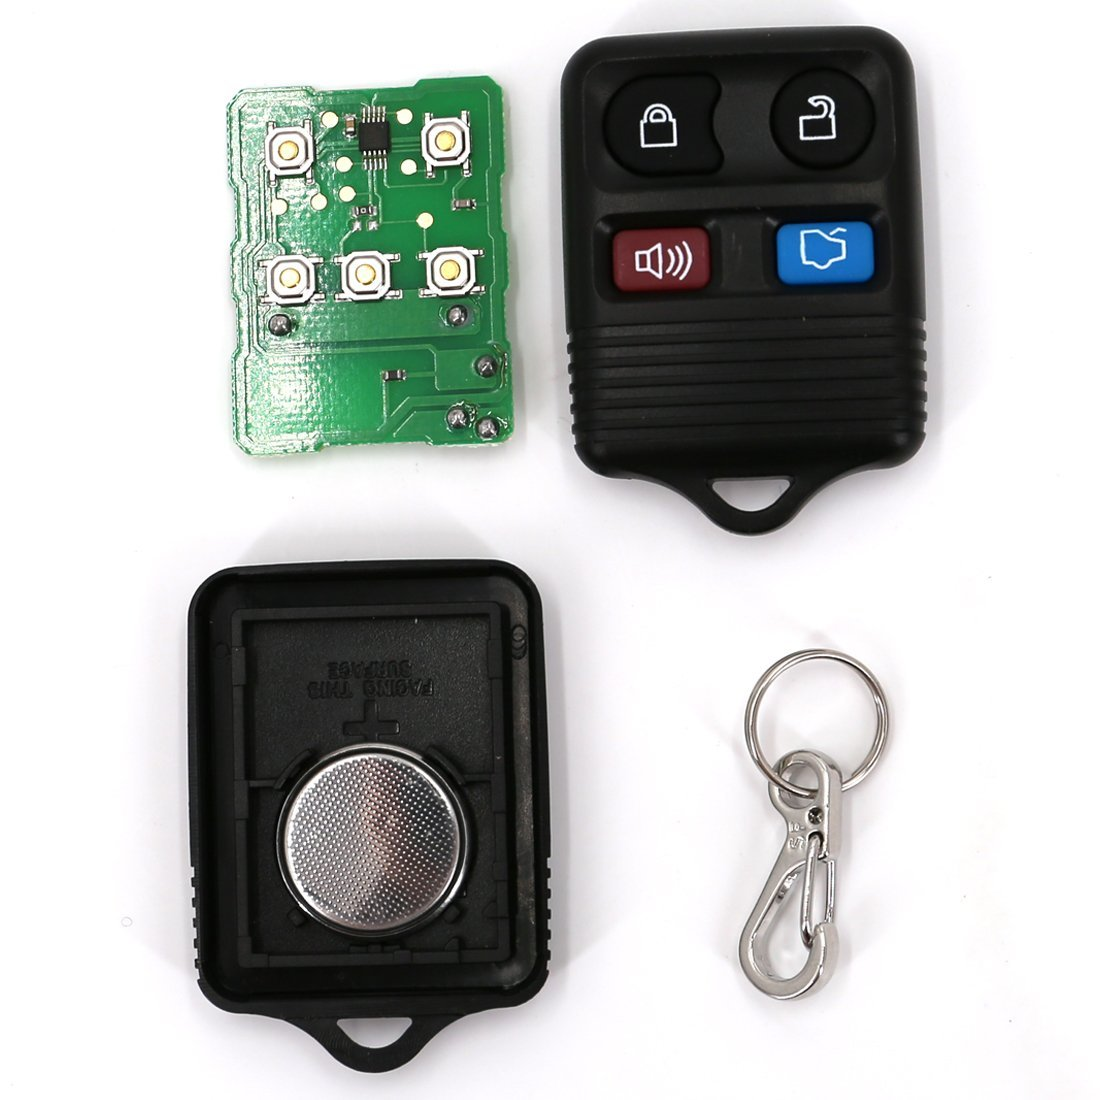 UTSAUTO Replacement Keyless Entry Shell 1 Pack Remote Control Ford Lincoln Mercury Key Fob Clicker Transmitter 4 Button